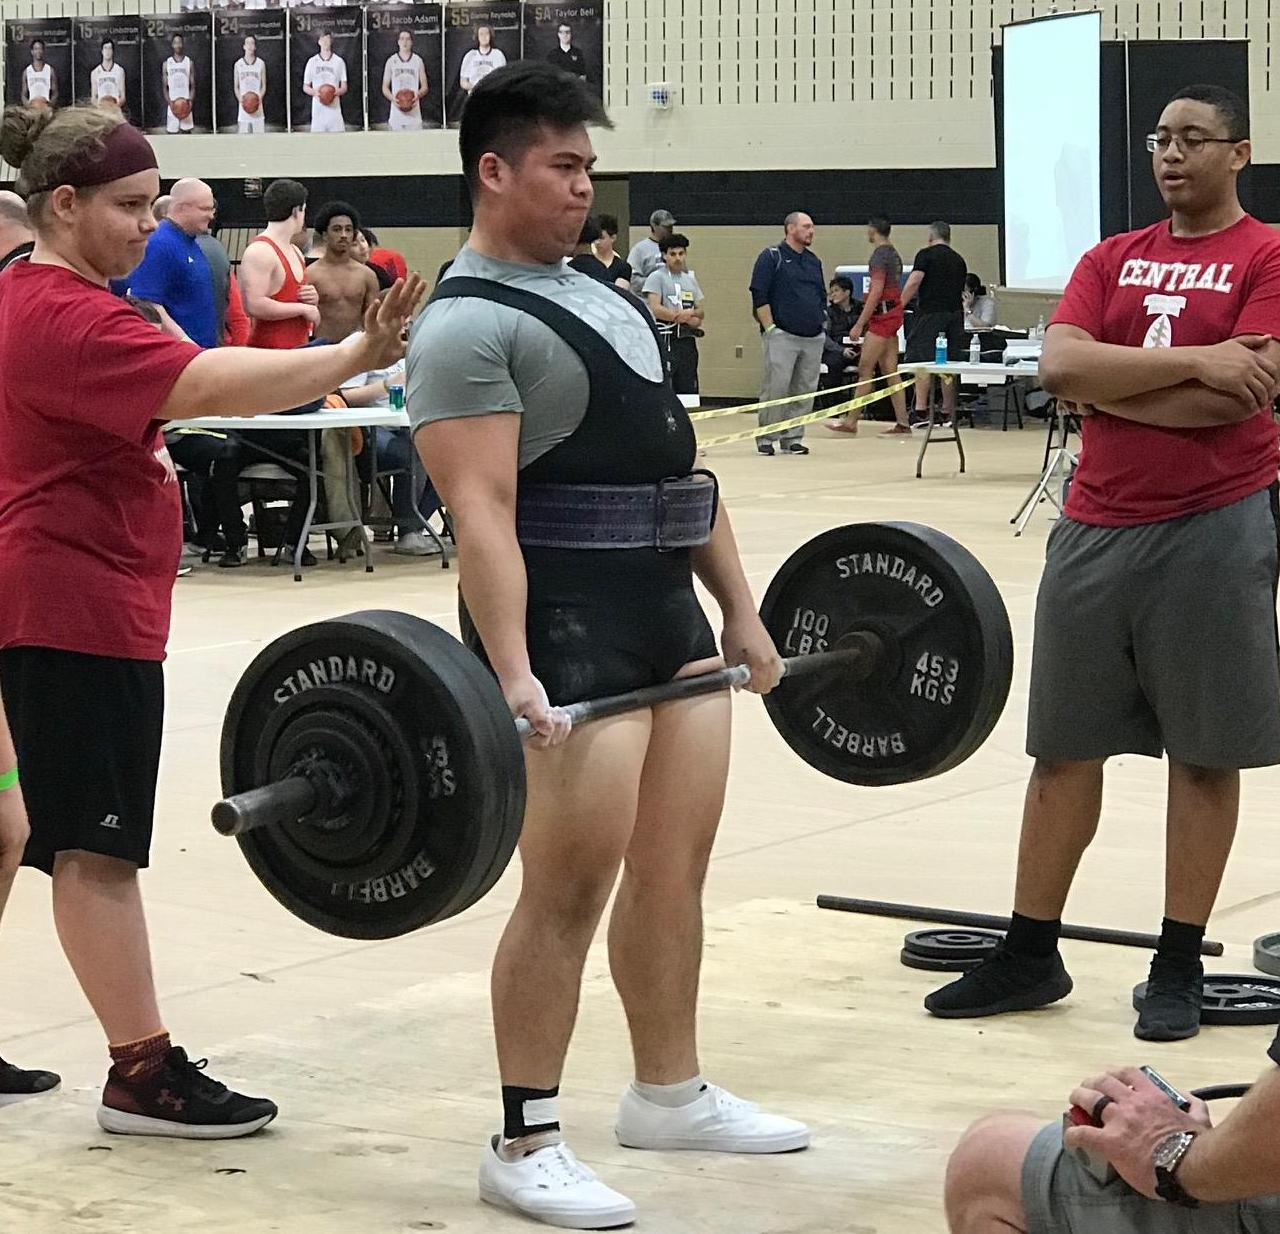 Brewer High School powerlifter Isaac Vielma competed in the Region 6 Powerlifting Meet on March 2 and hit his personal best in the 275 lb. weight class.  To qualify for regionals, athletes must be in the top 12 of their weight class.